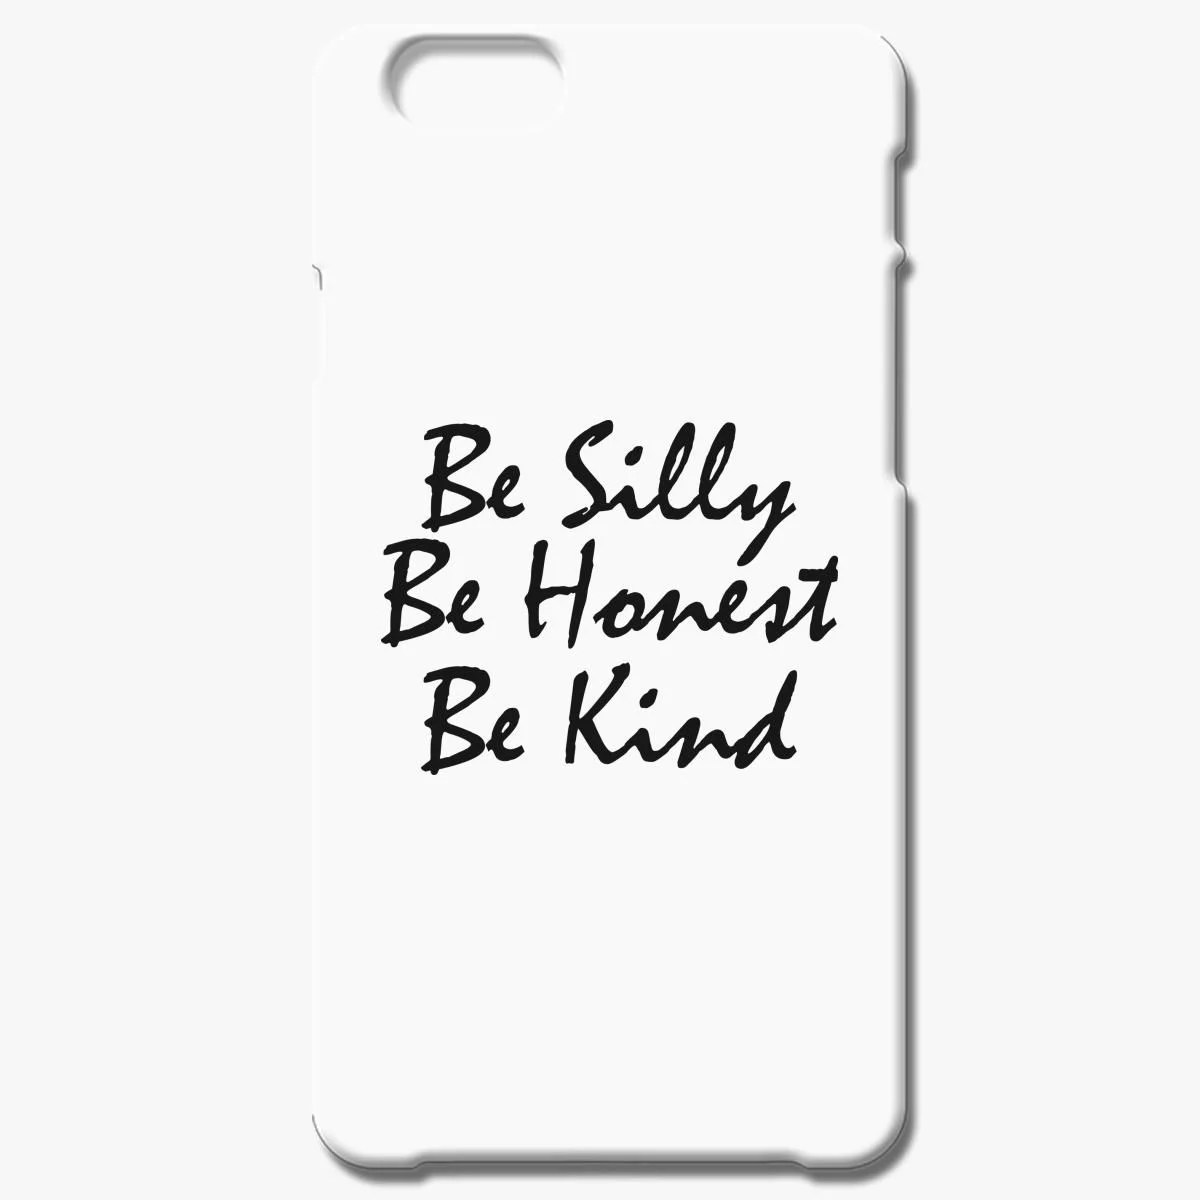 Be Kind Tees Iphone 6 6s Plus Case